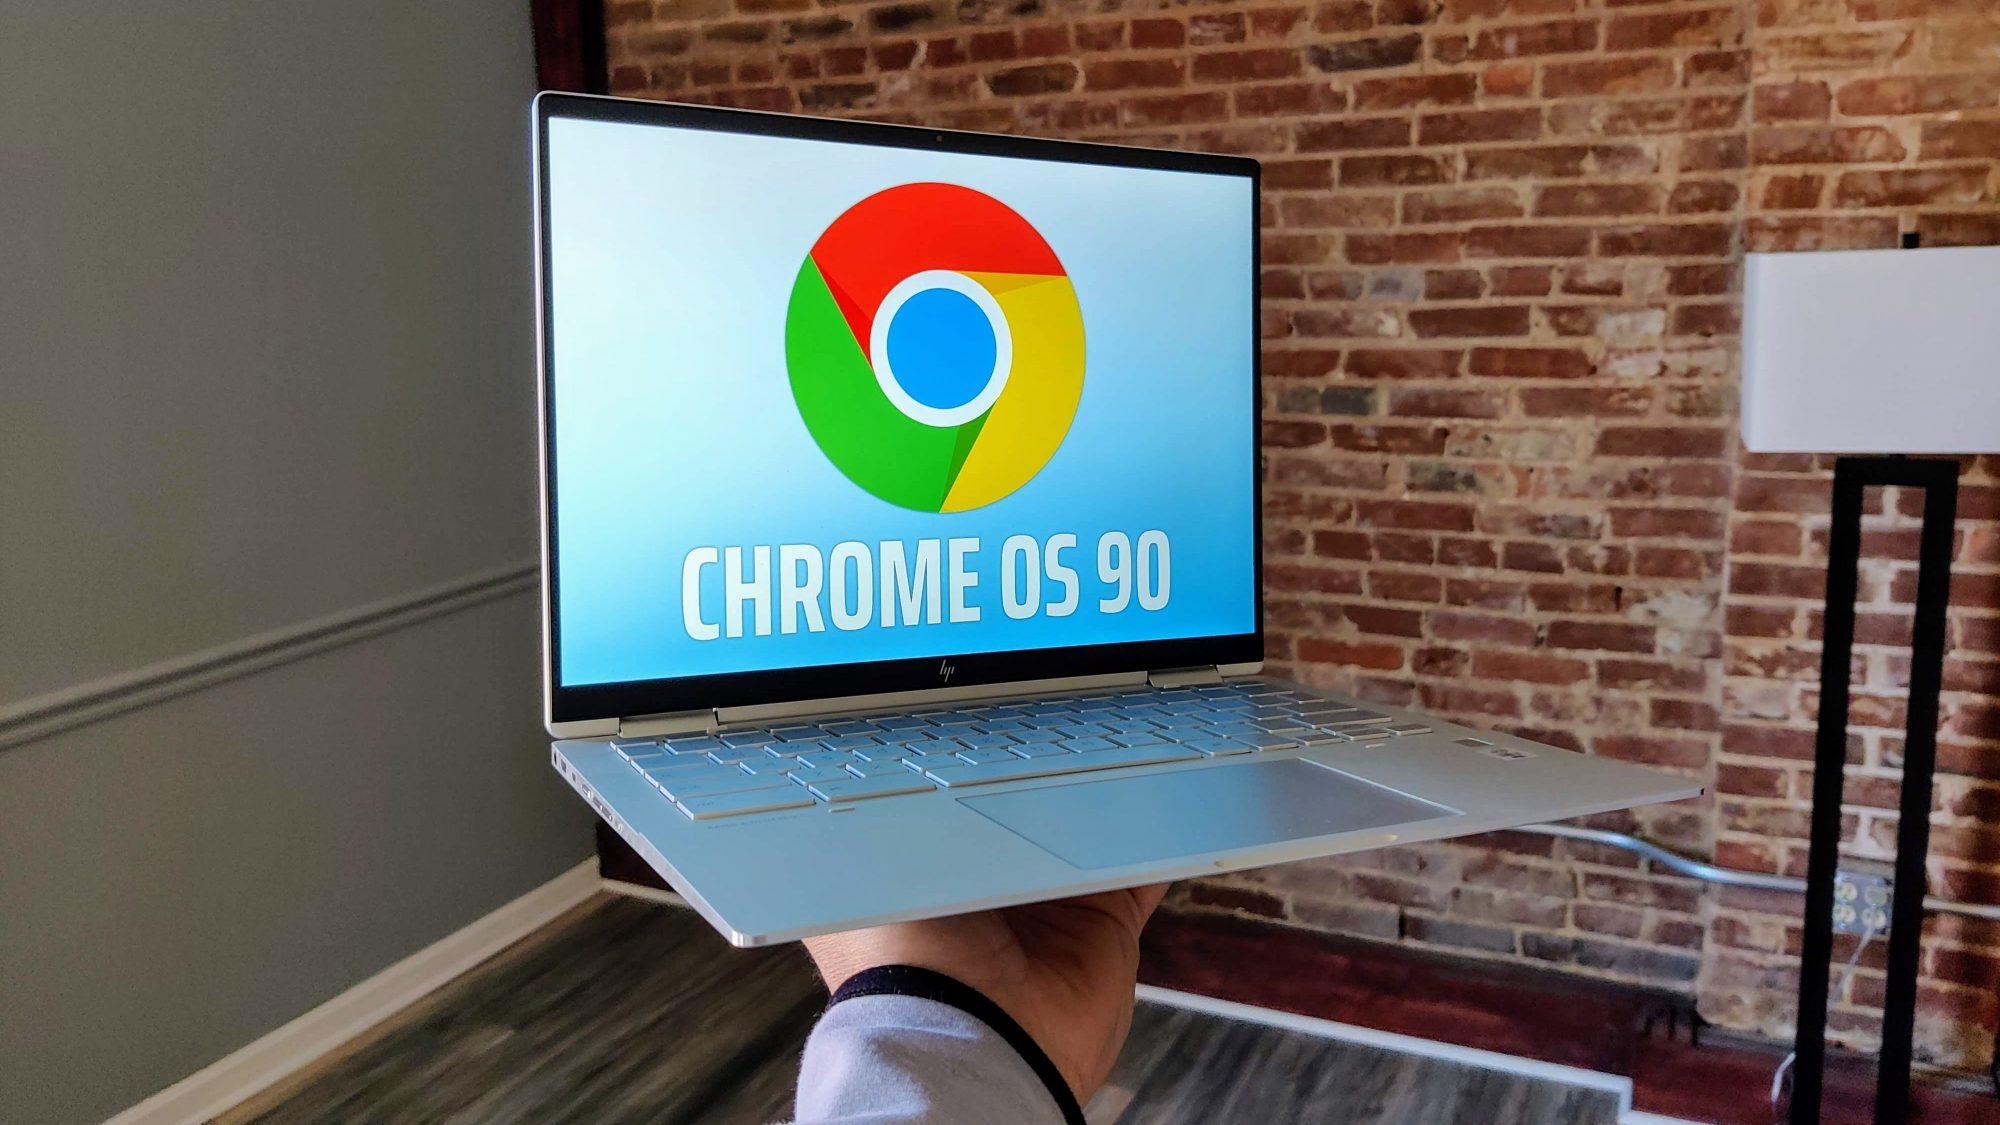 3 weeks late, Chrome OS 90 is finally rolling out to all eligible Chromebooks